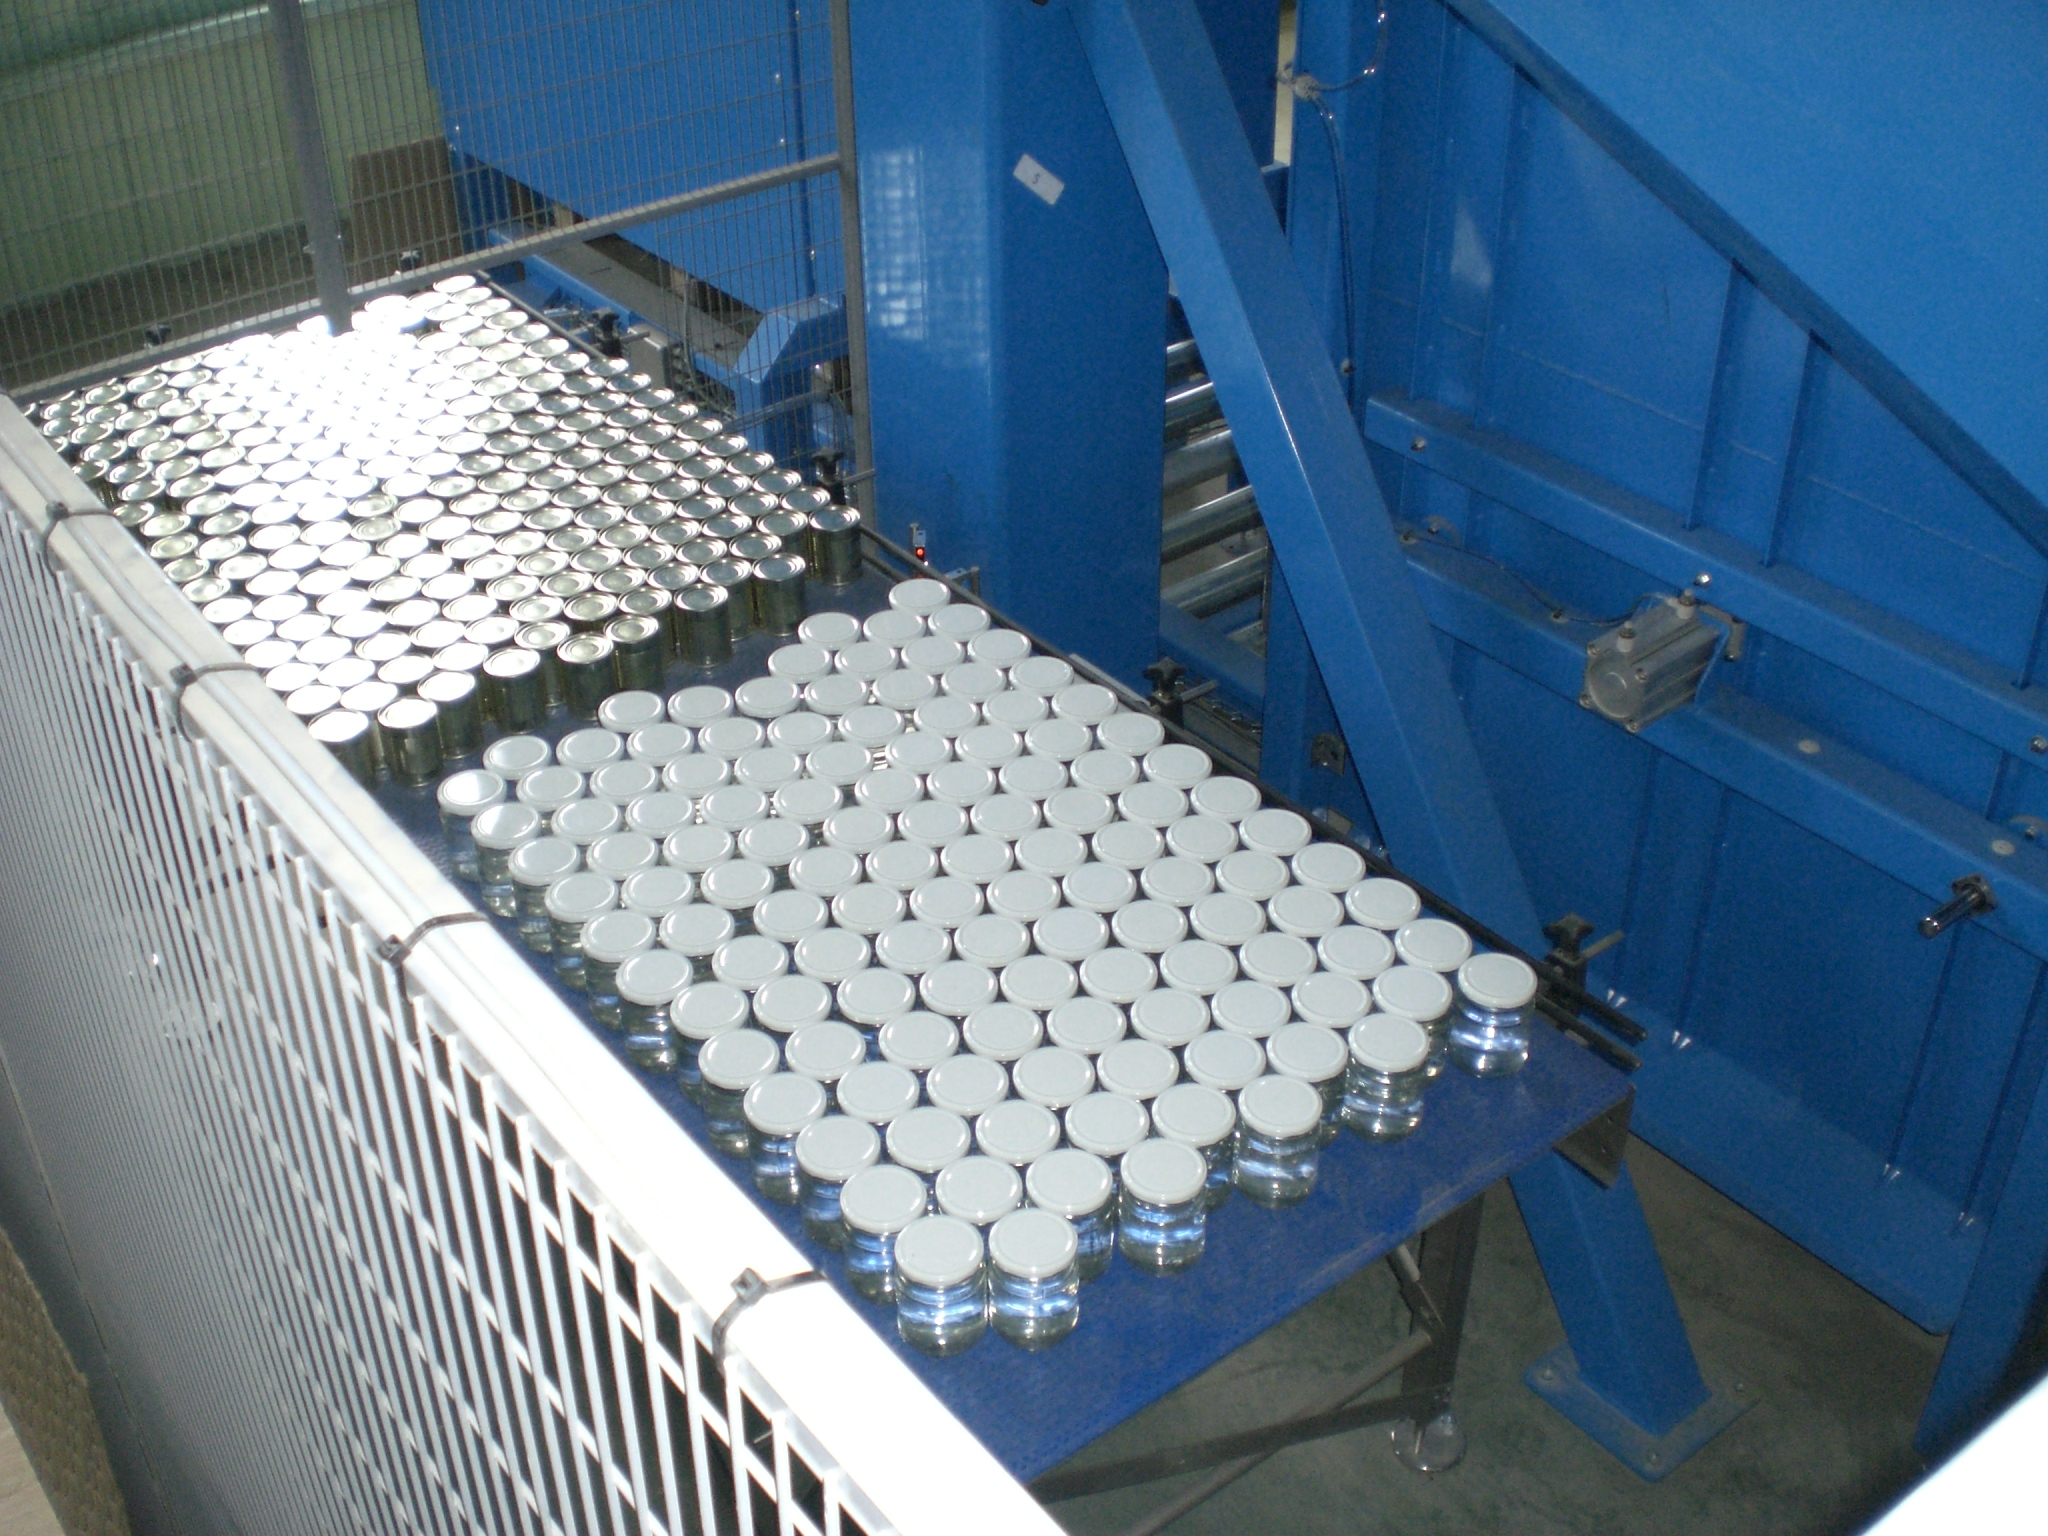 Qumec - Palletizing cans and glass